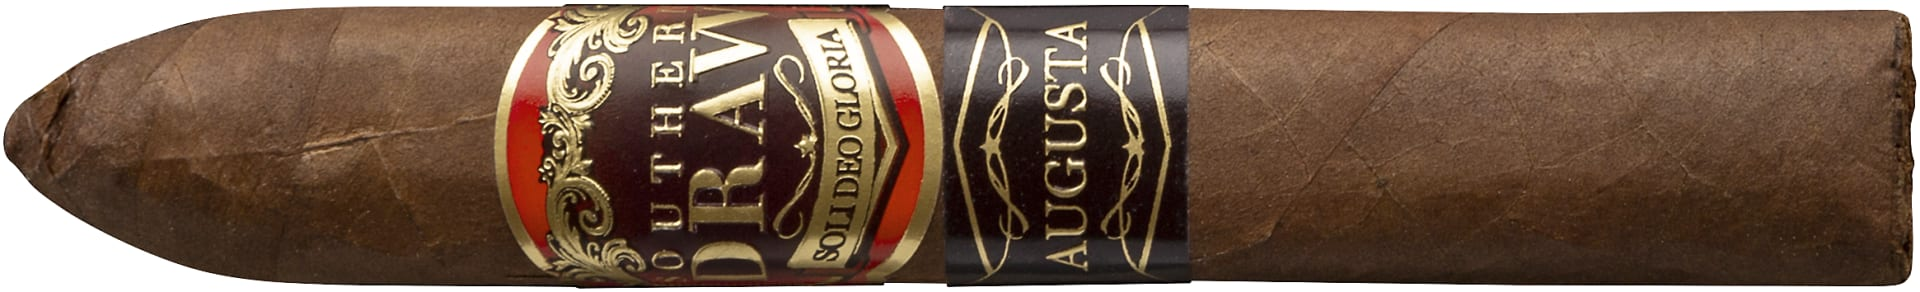 Southern Draw Firethorn Augusta Heading to Cigars International This Month Featured Image